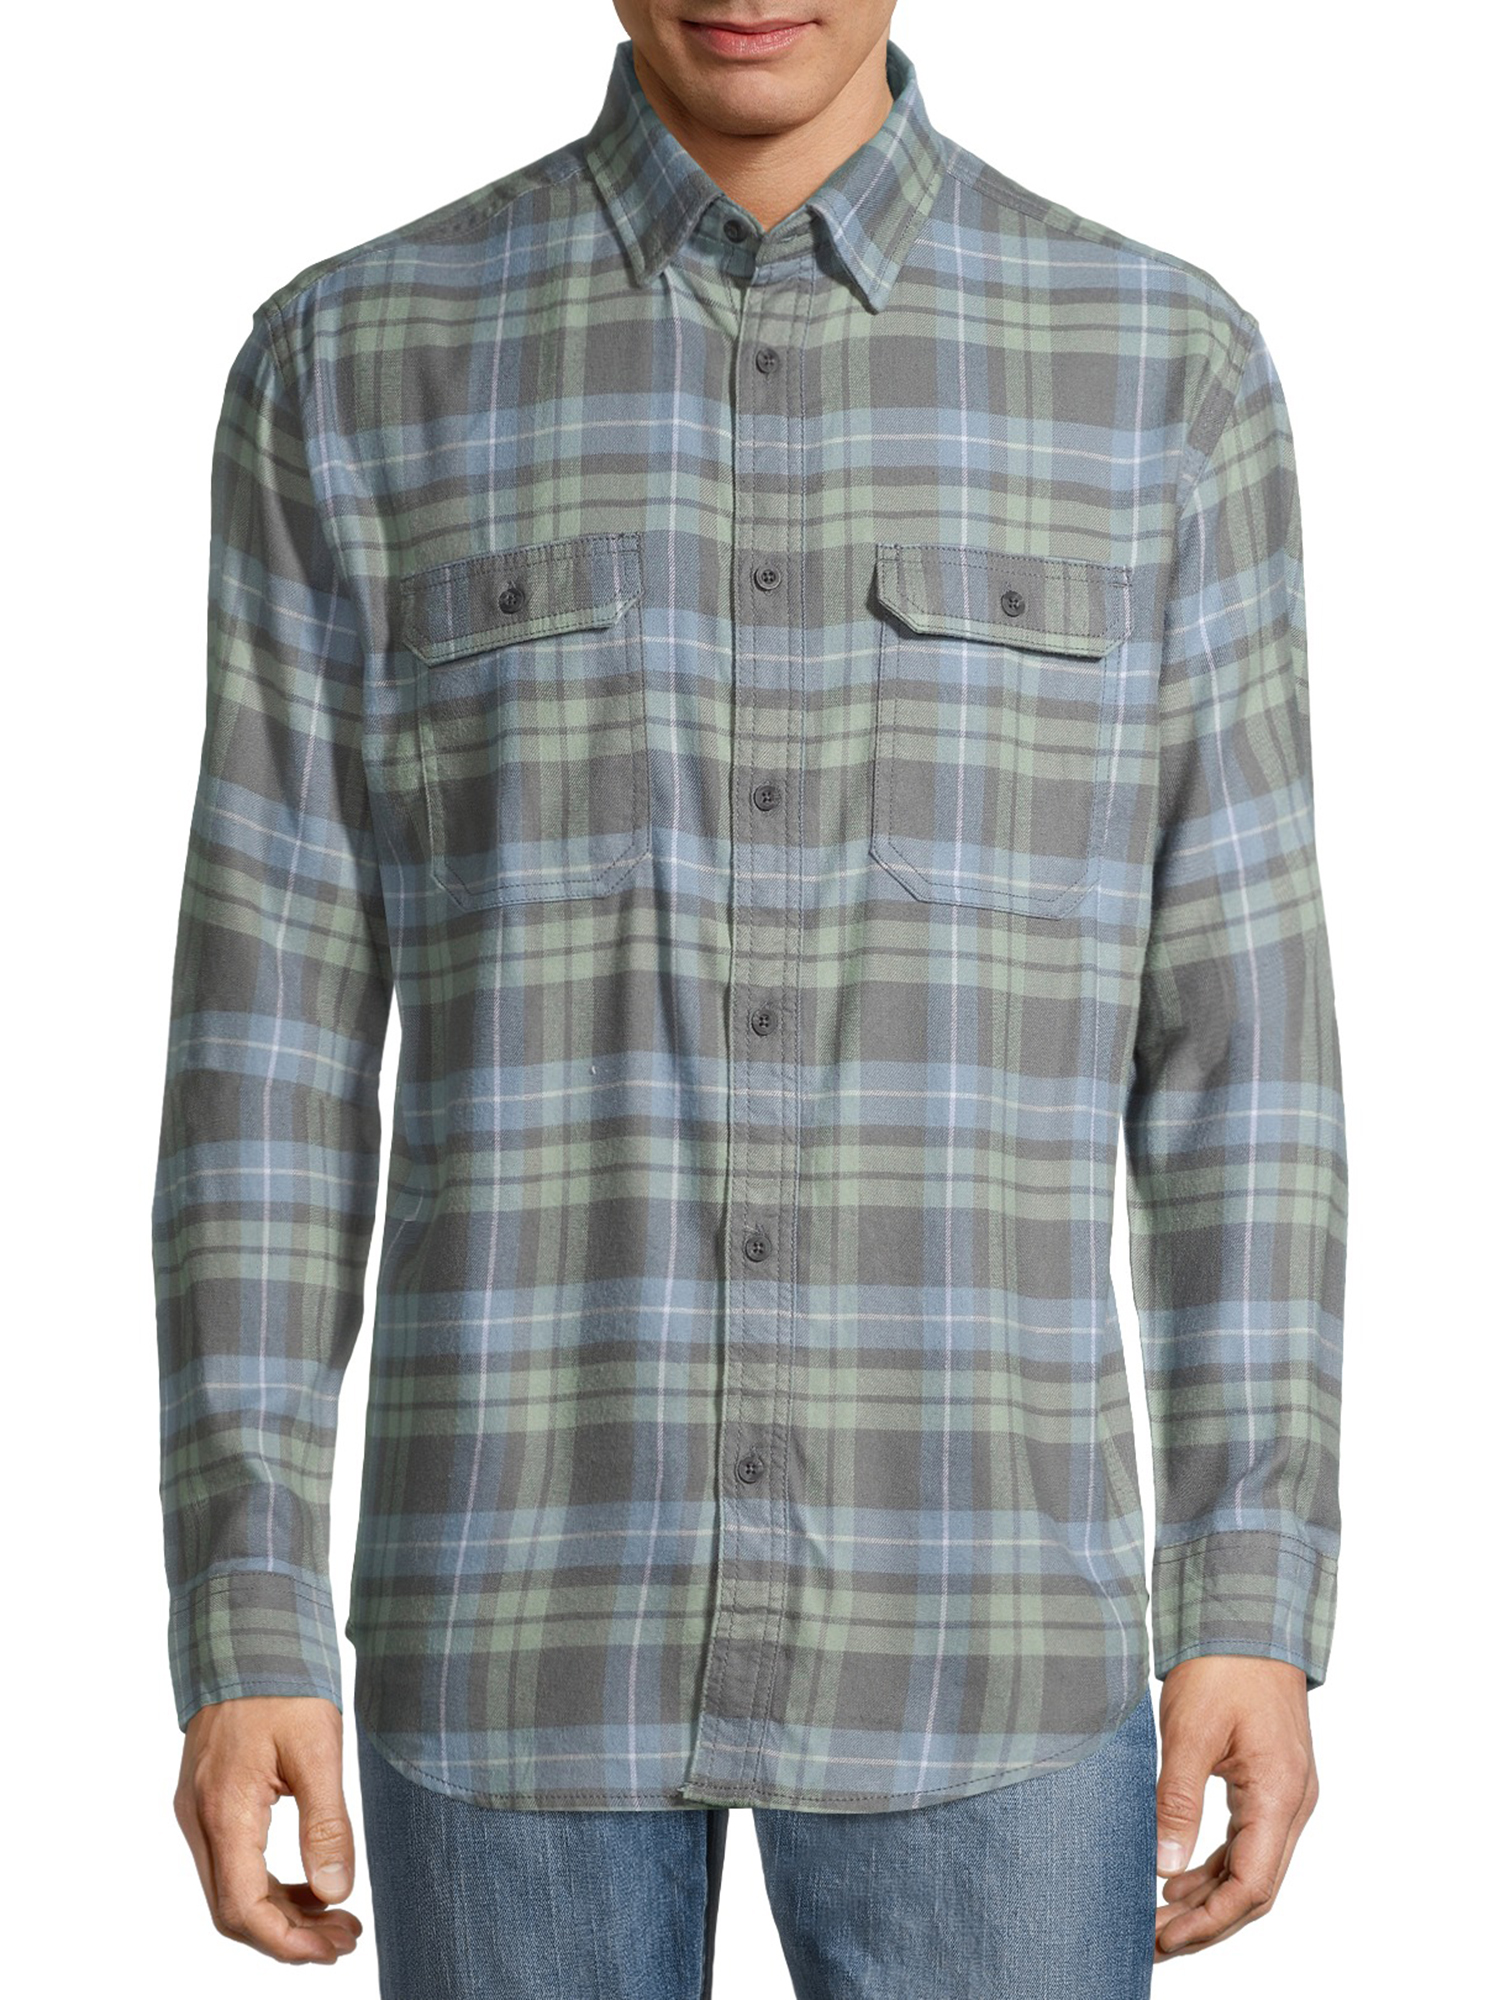 George Men's and Big Men's Super Soft Flannel Shirt Grey Green Plaid (Size 2XL 50-52)